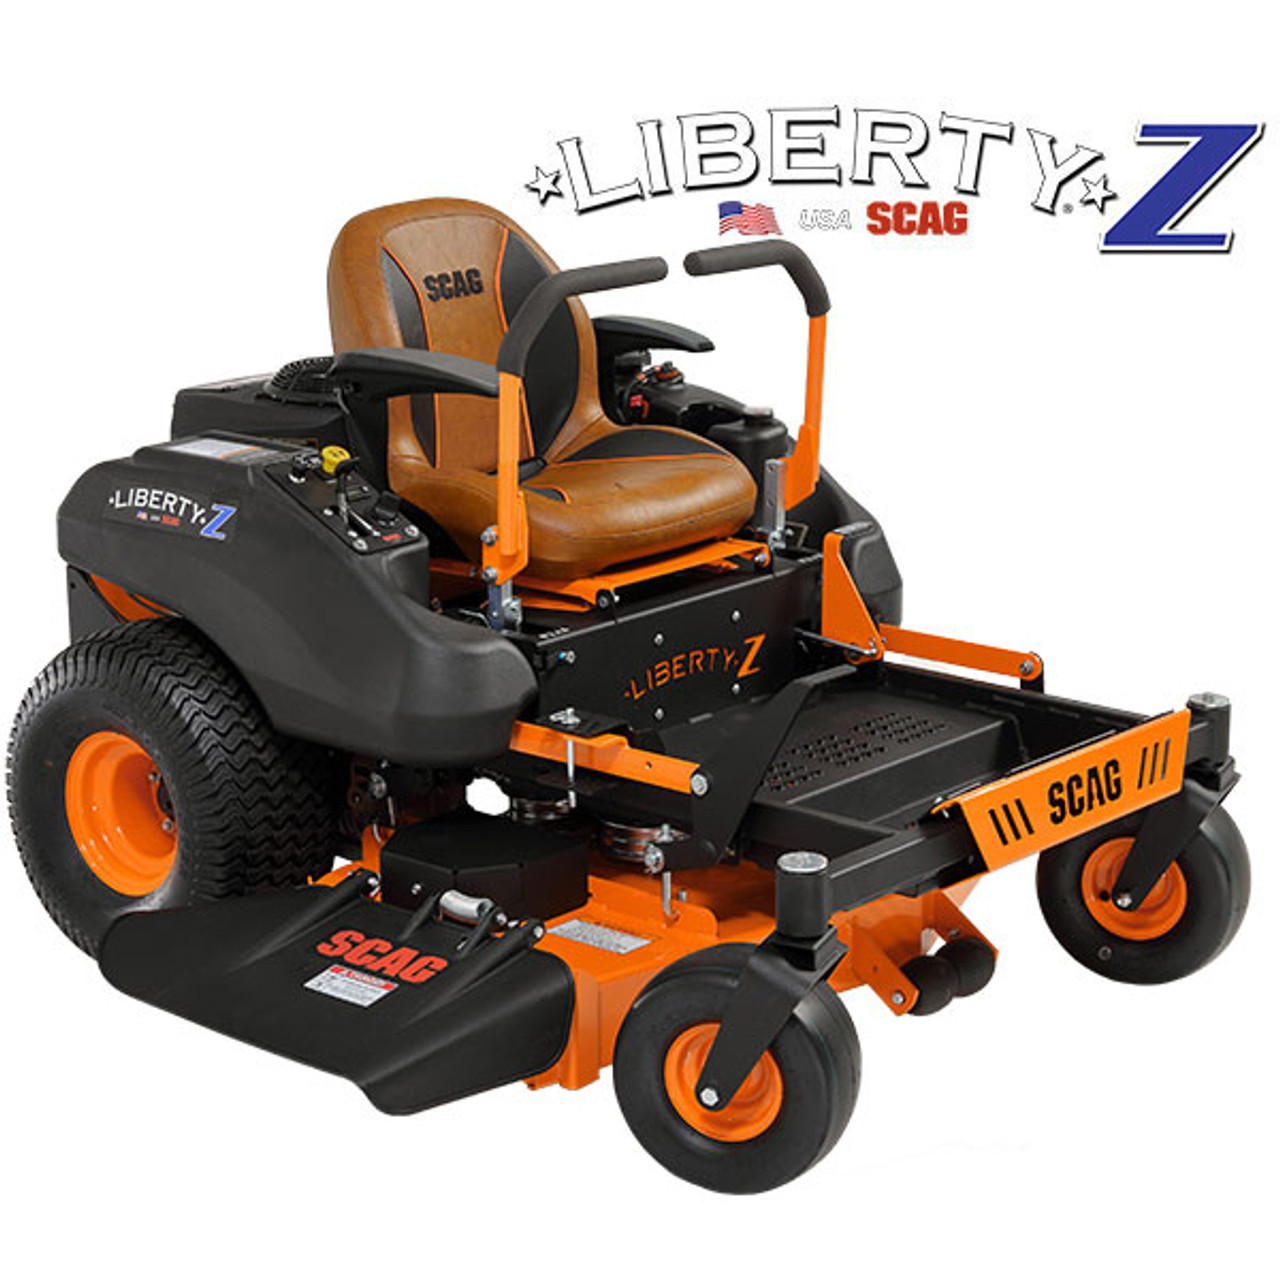 "Scag SZL52-23FR 52"" Liberty Z Zero-Turn Riding Lawn Mower w/ 23hp Kawasaki FR Engine Image"